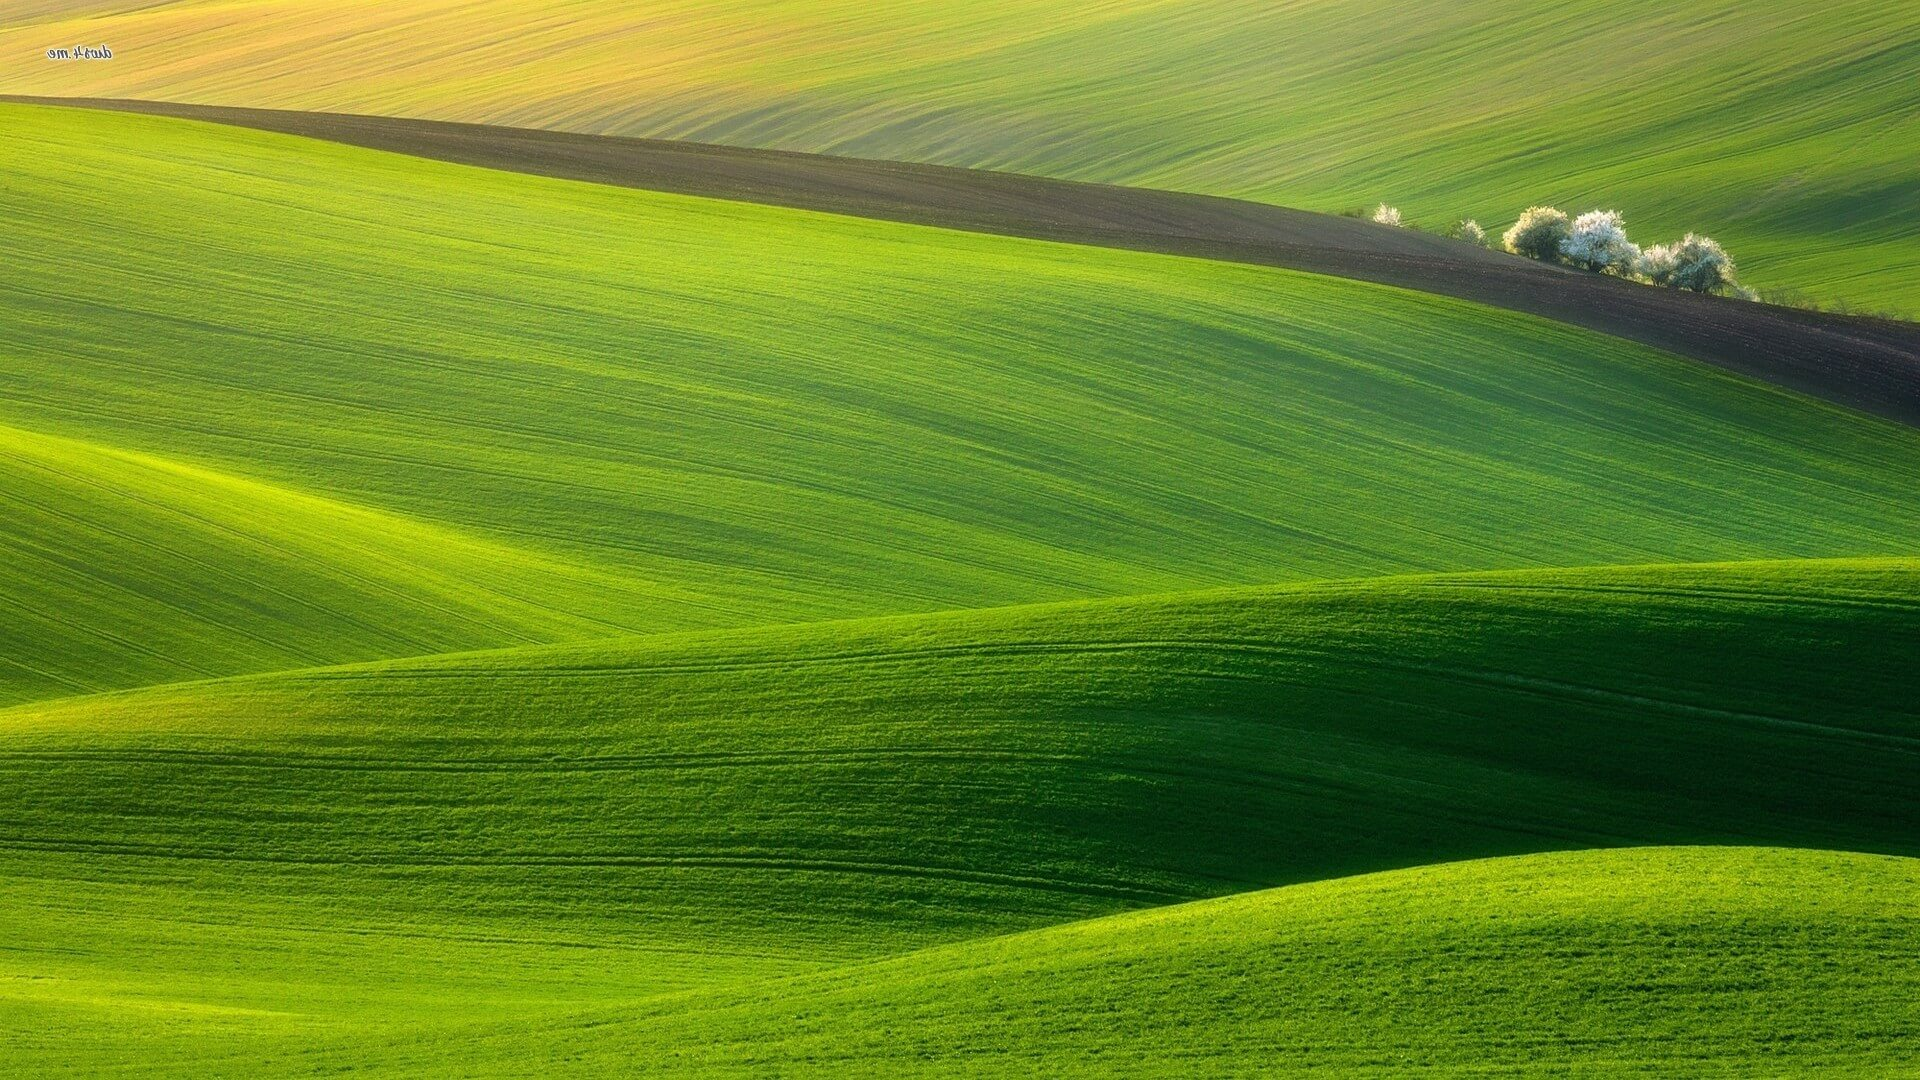 Land-Green-Computer-Wallpaper-e1392725817876